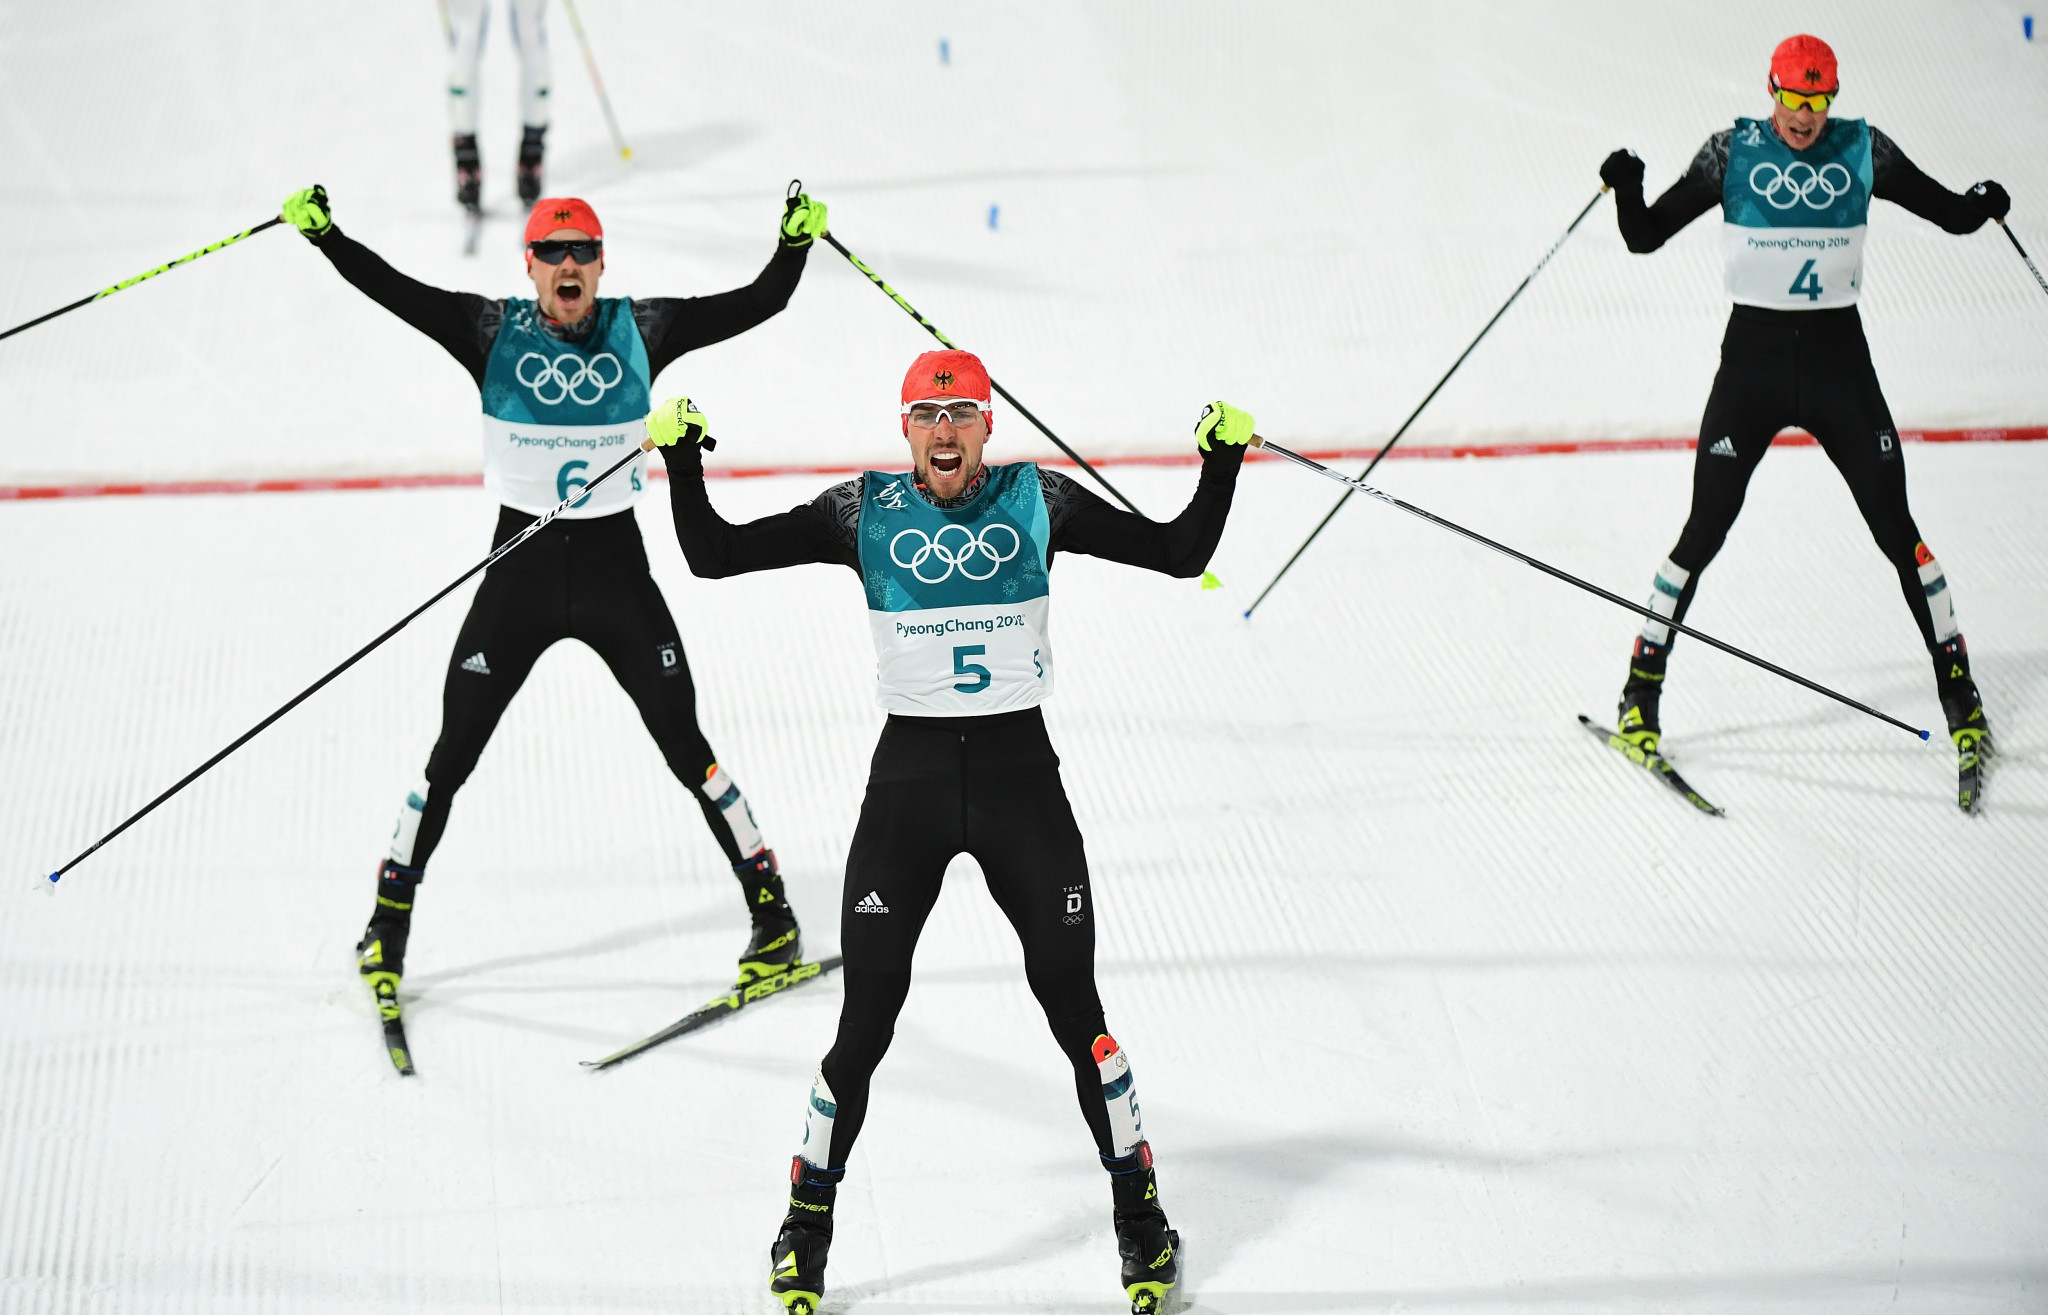 World champion Johannes Rydzek led a German one-two-three finish in the Pyeongchang 2018 Nordic combined individual Gundersen large hill/10 kilometres event ©Getty Images